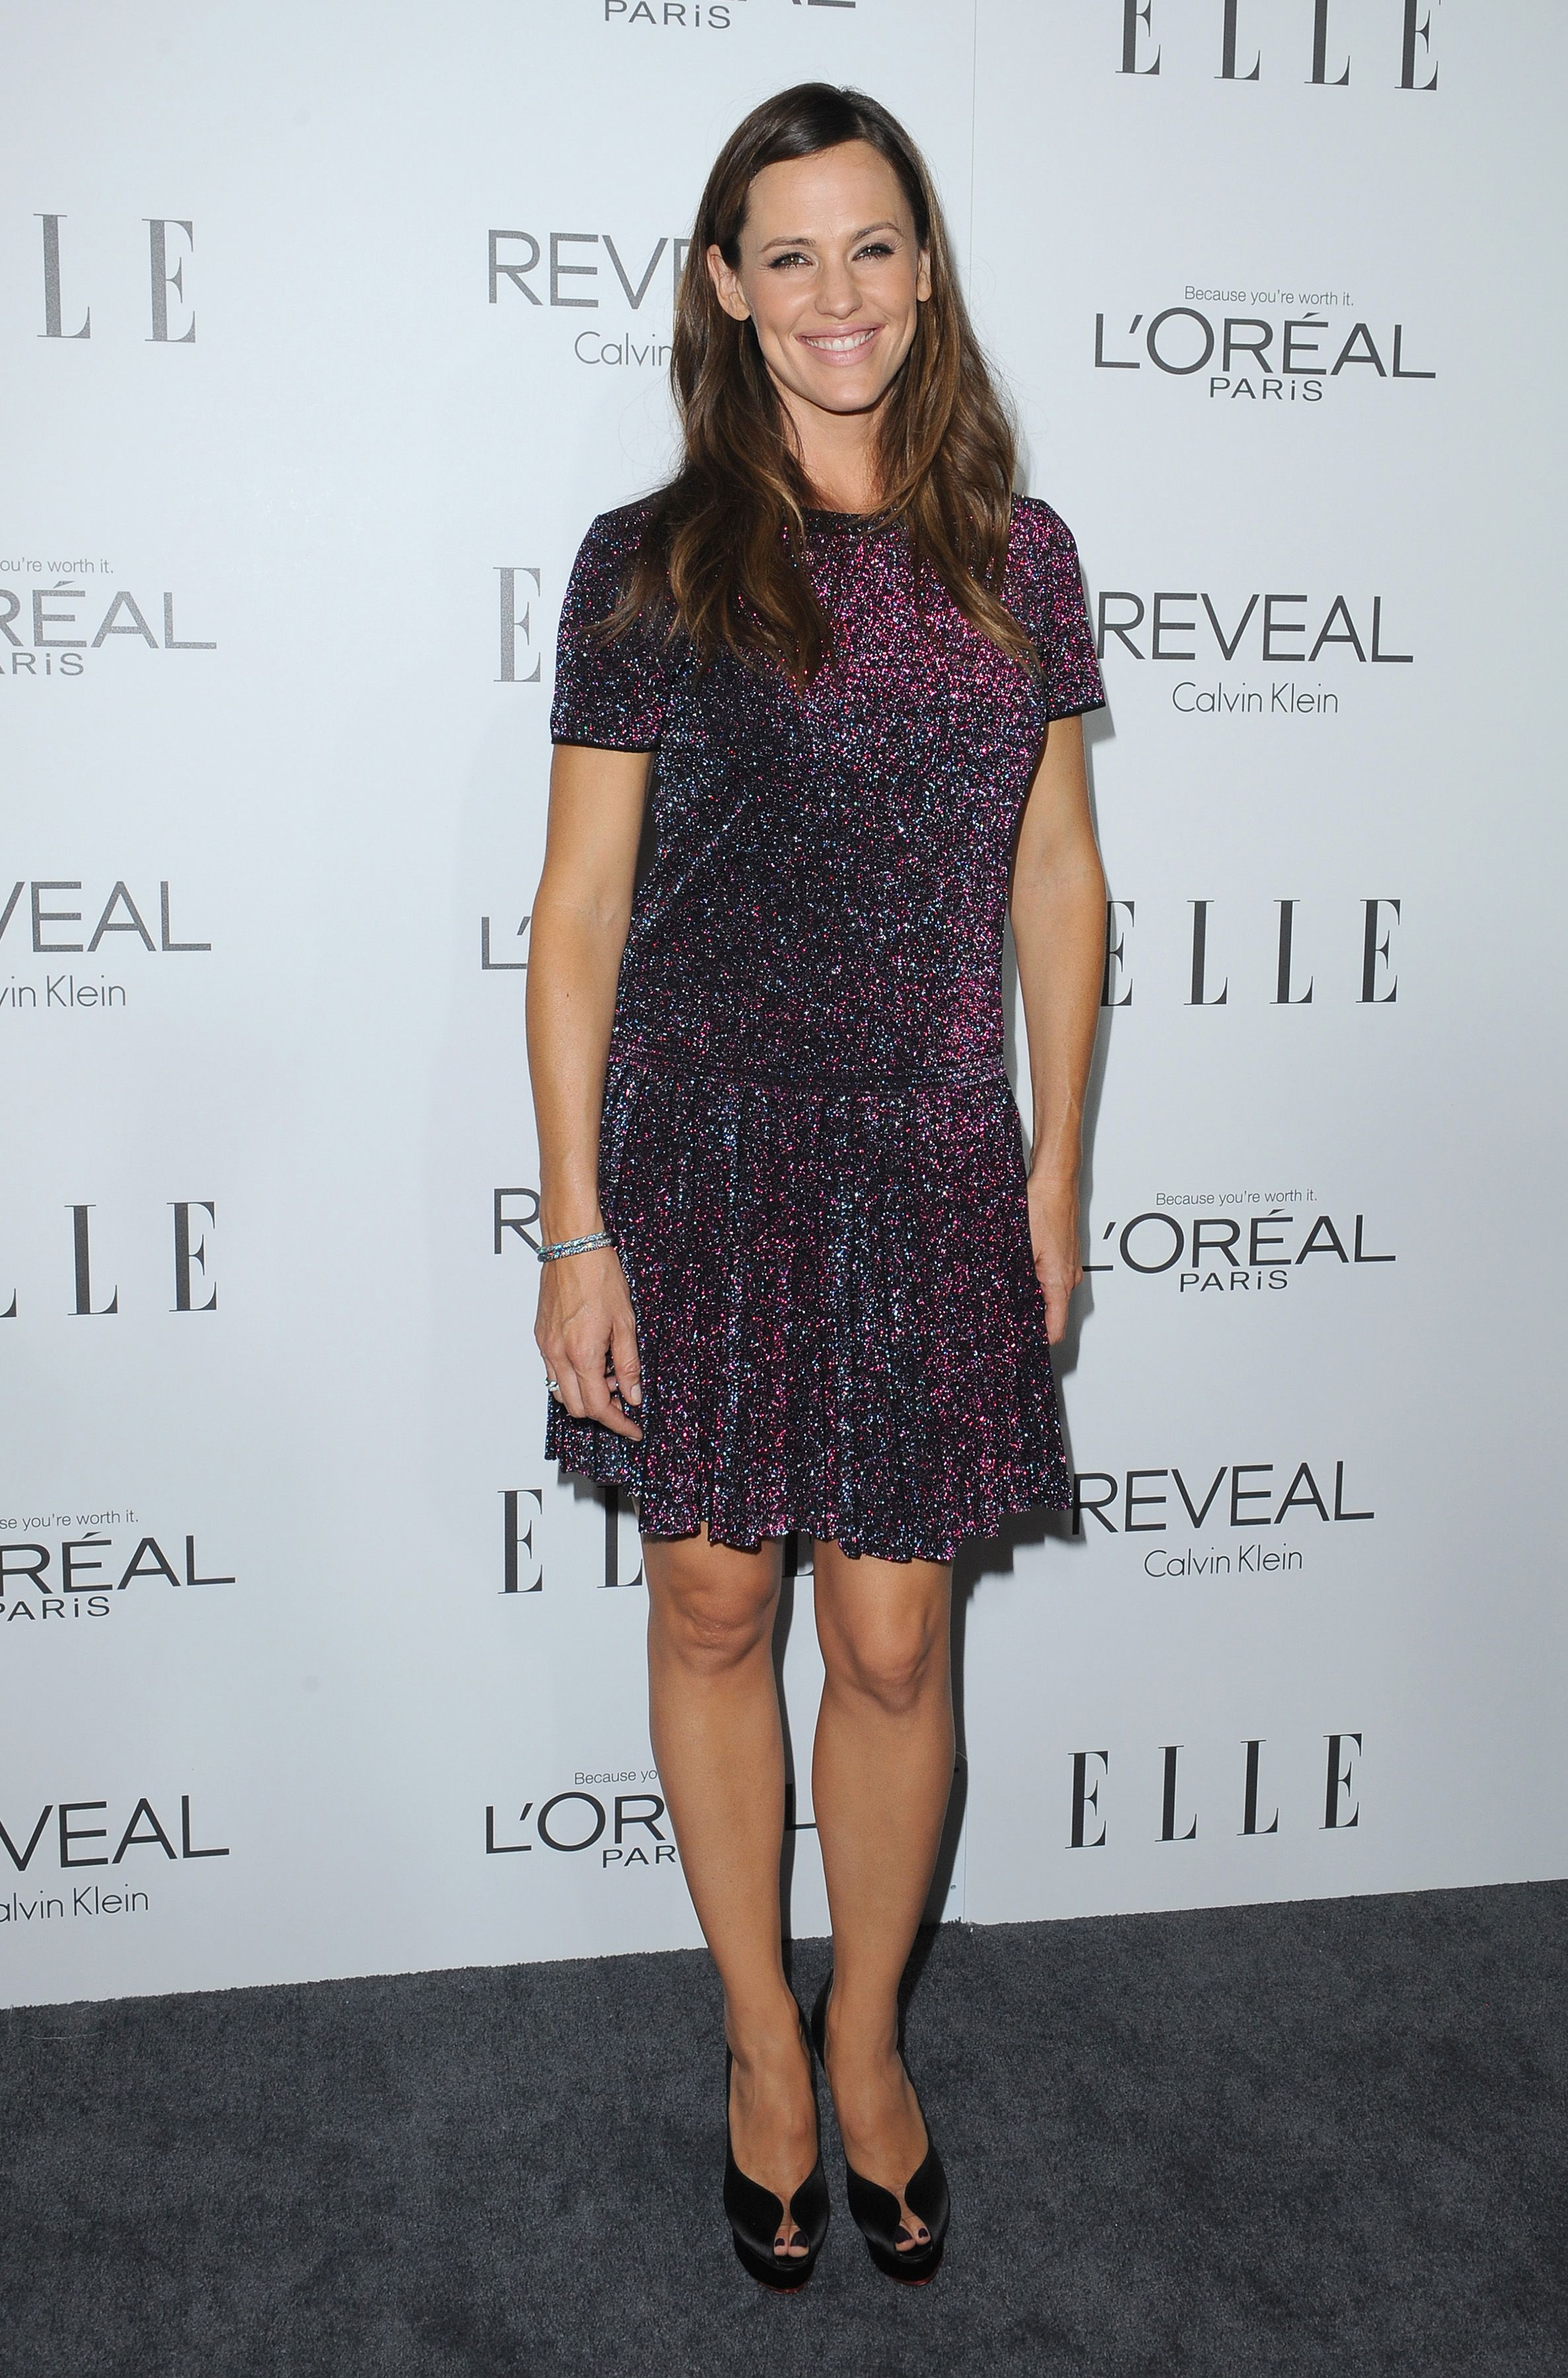 October 20, 2014 At the 21st Annual ELLE Women In Hollywood Awards in Beverly Hills.